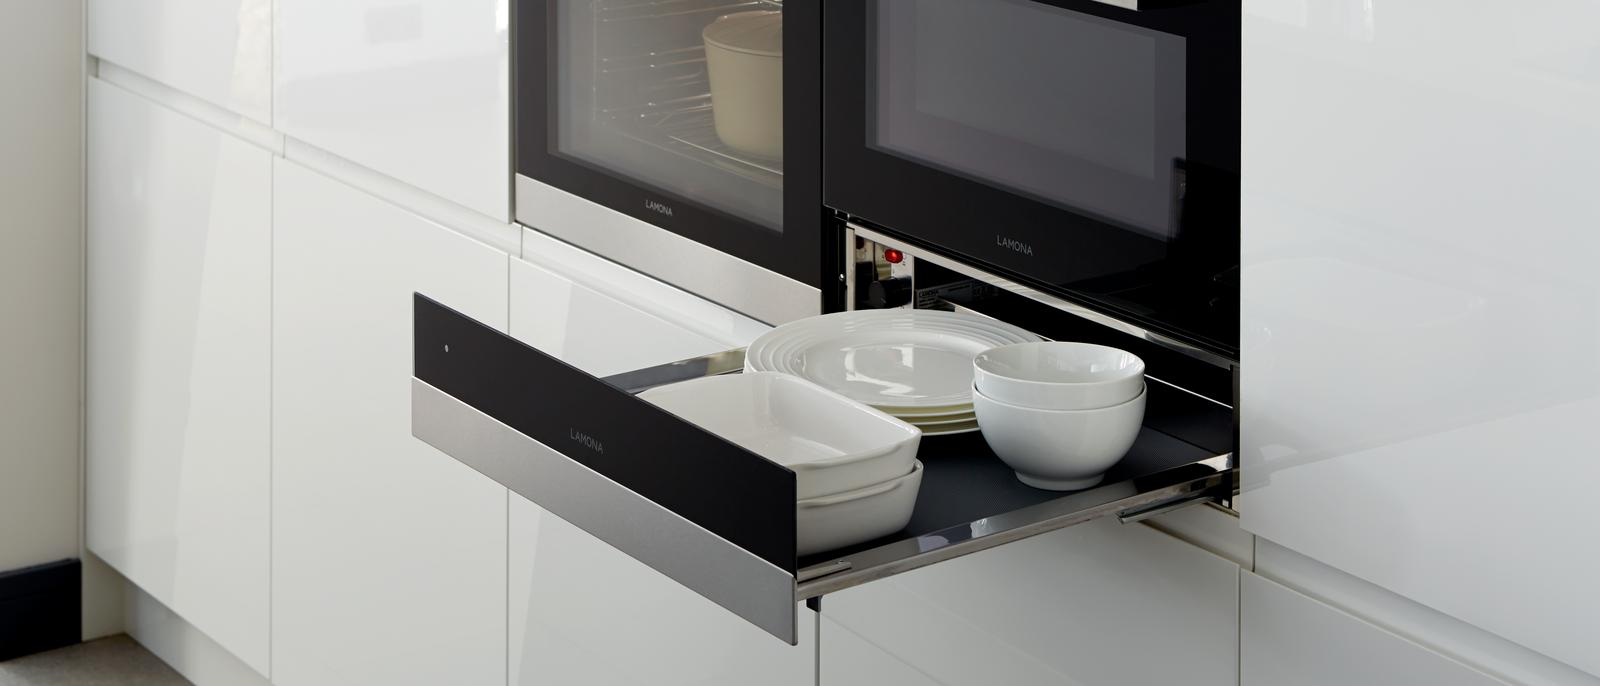 Lamona Touch Control Pyrolytic Oven, Lamona Touch Control, Combination Microwave and Lamona Warming Drawer (Gloss White Integrated Handle - Modern)